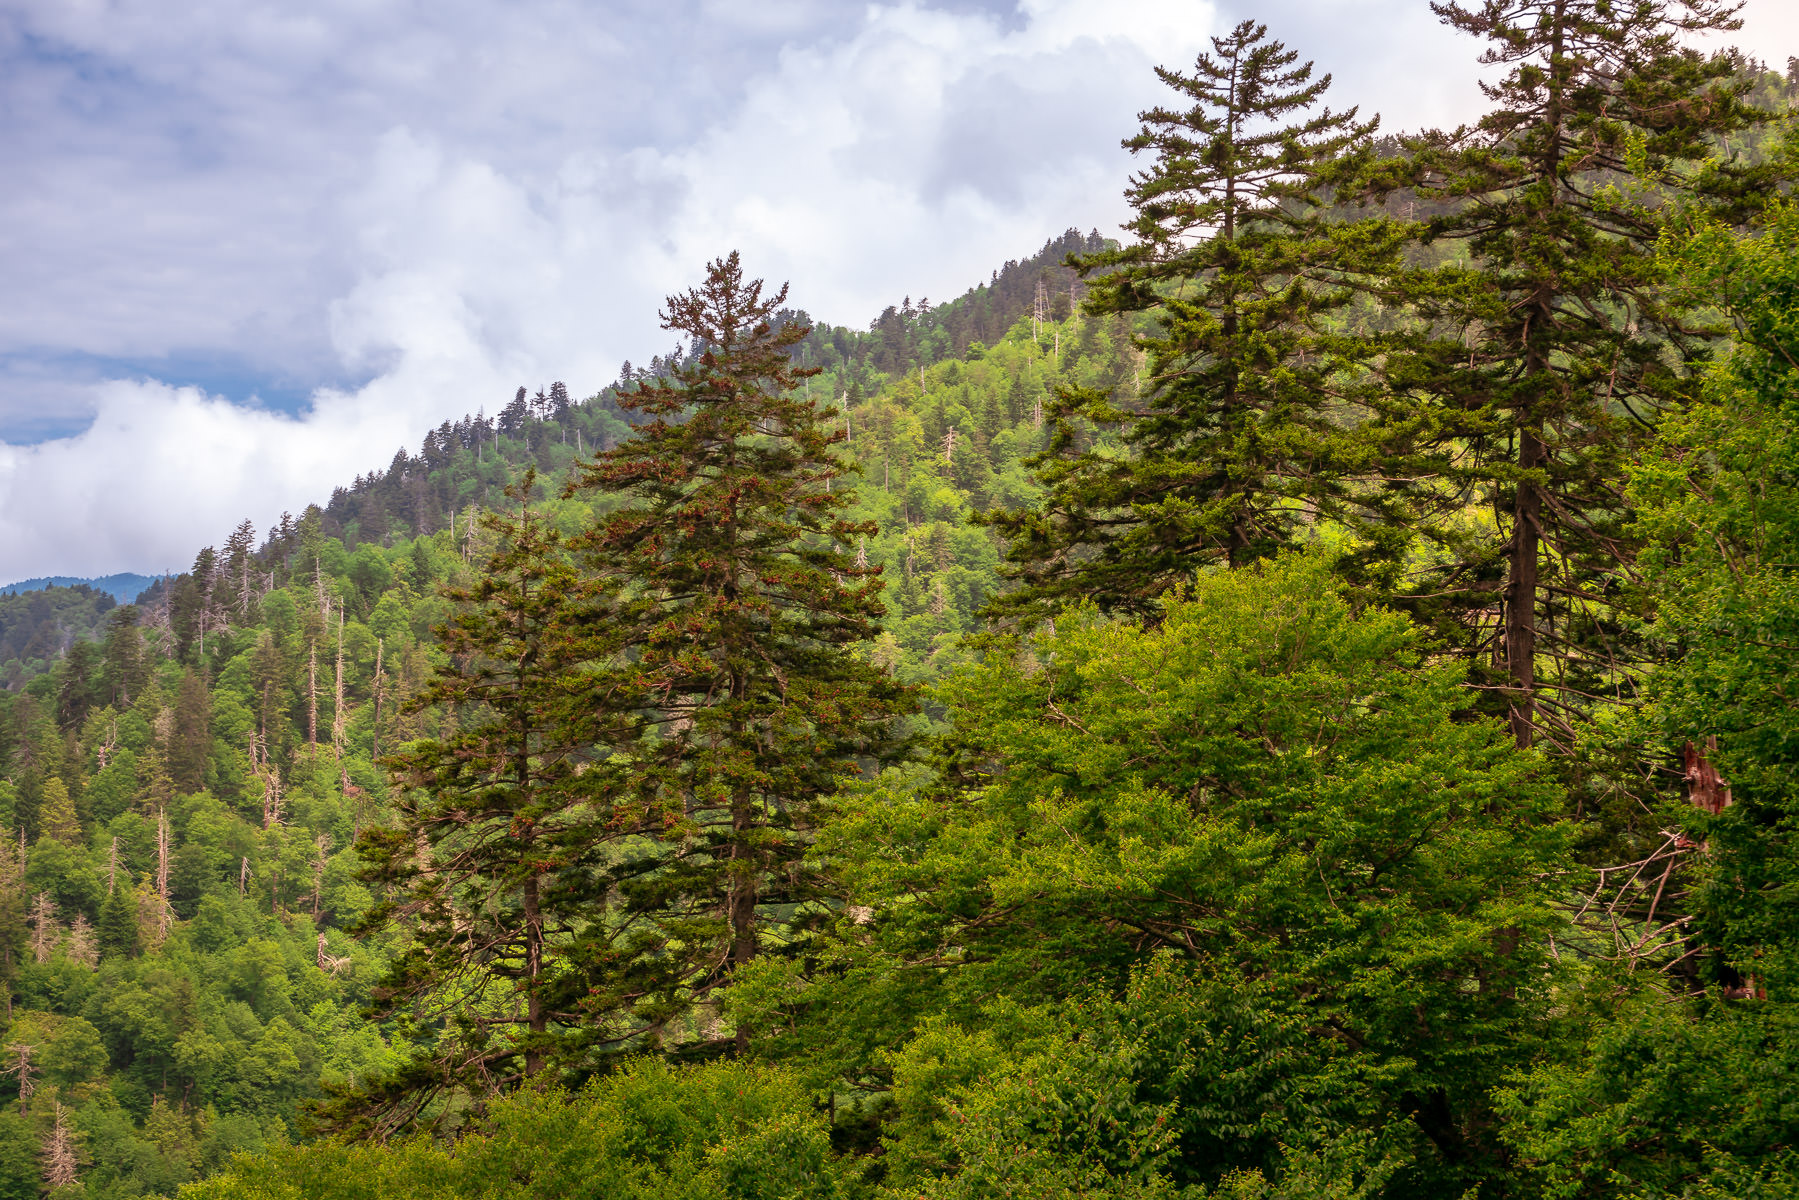 Trees grown on a mountainside in Tennessee's Great Smoky Mountains National Park.